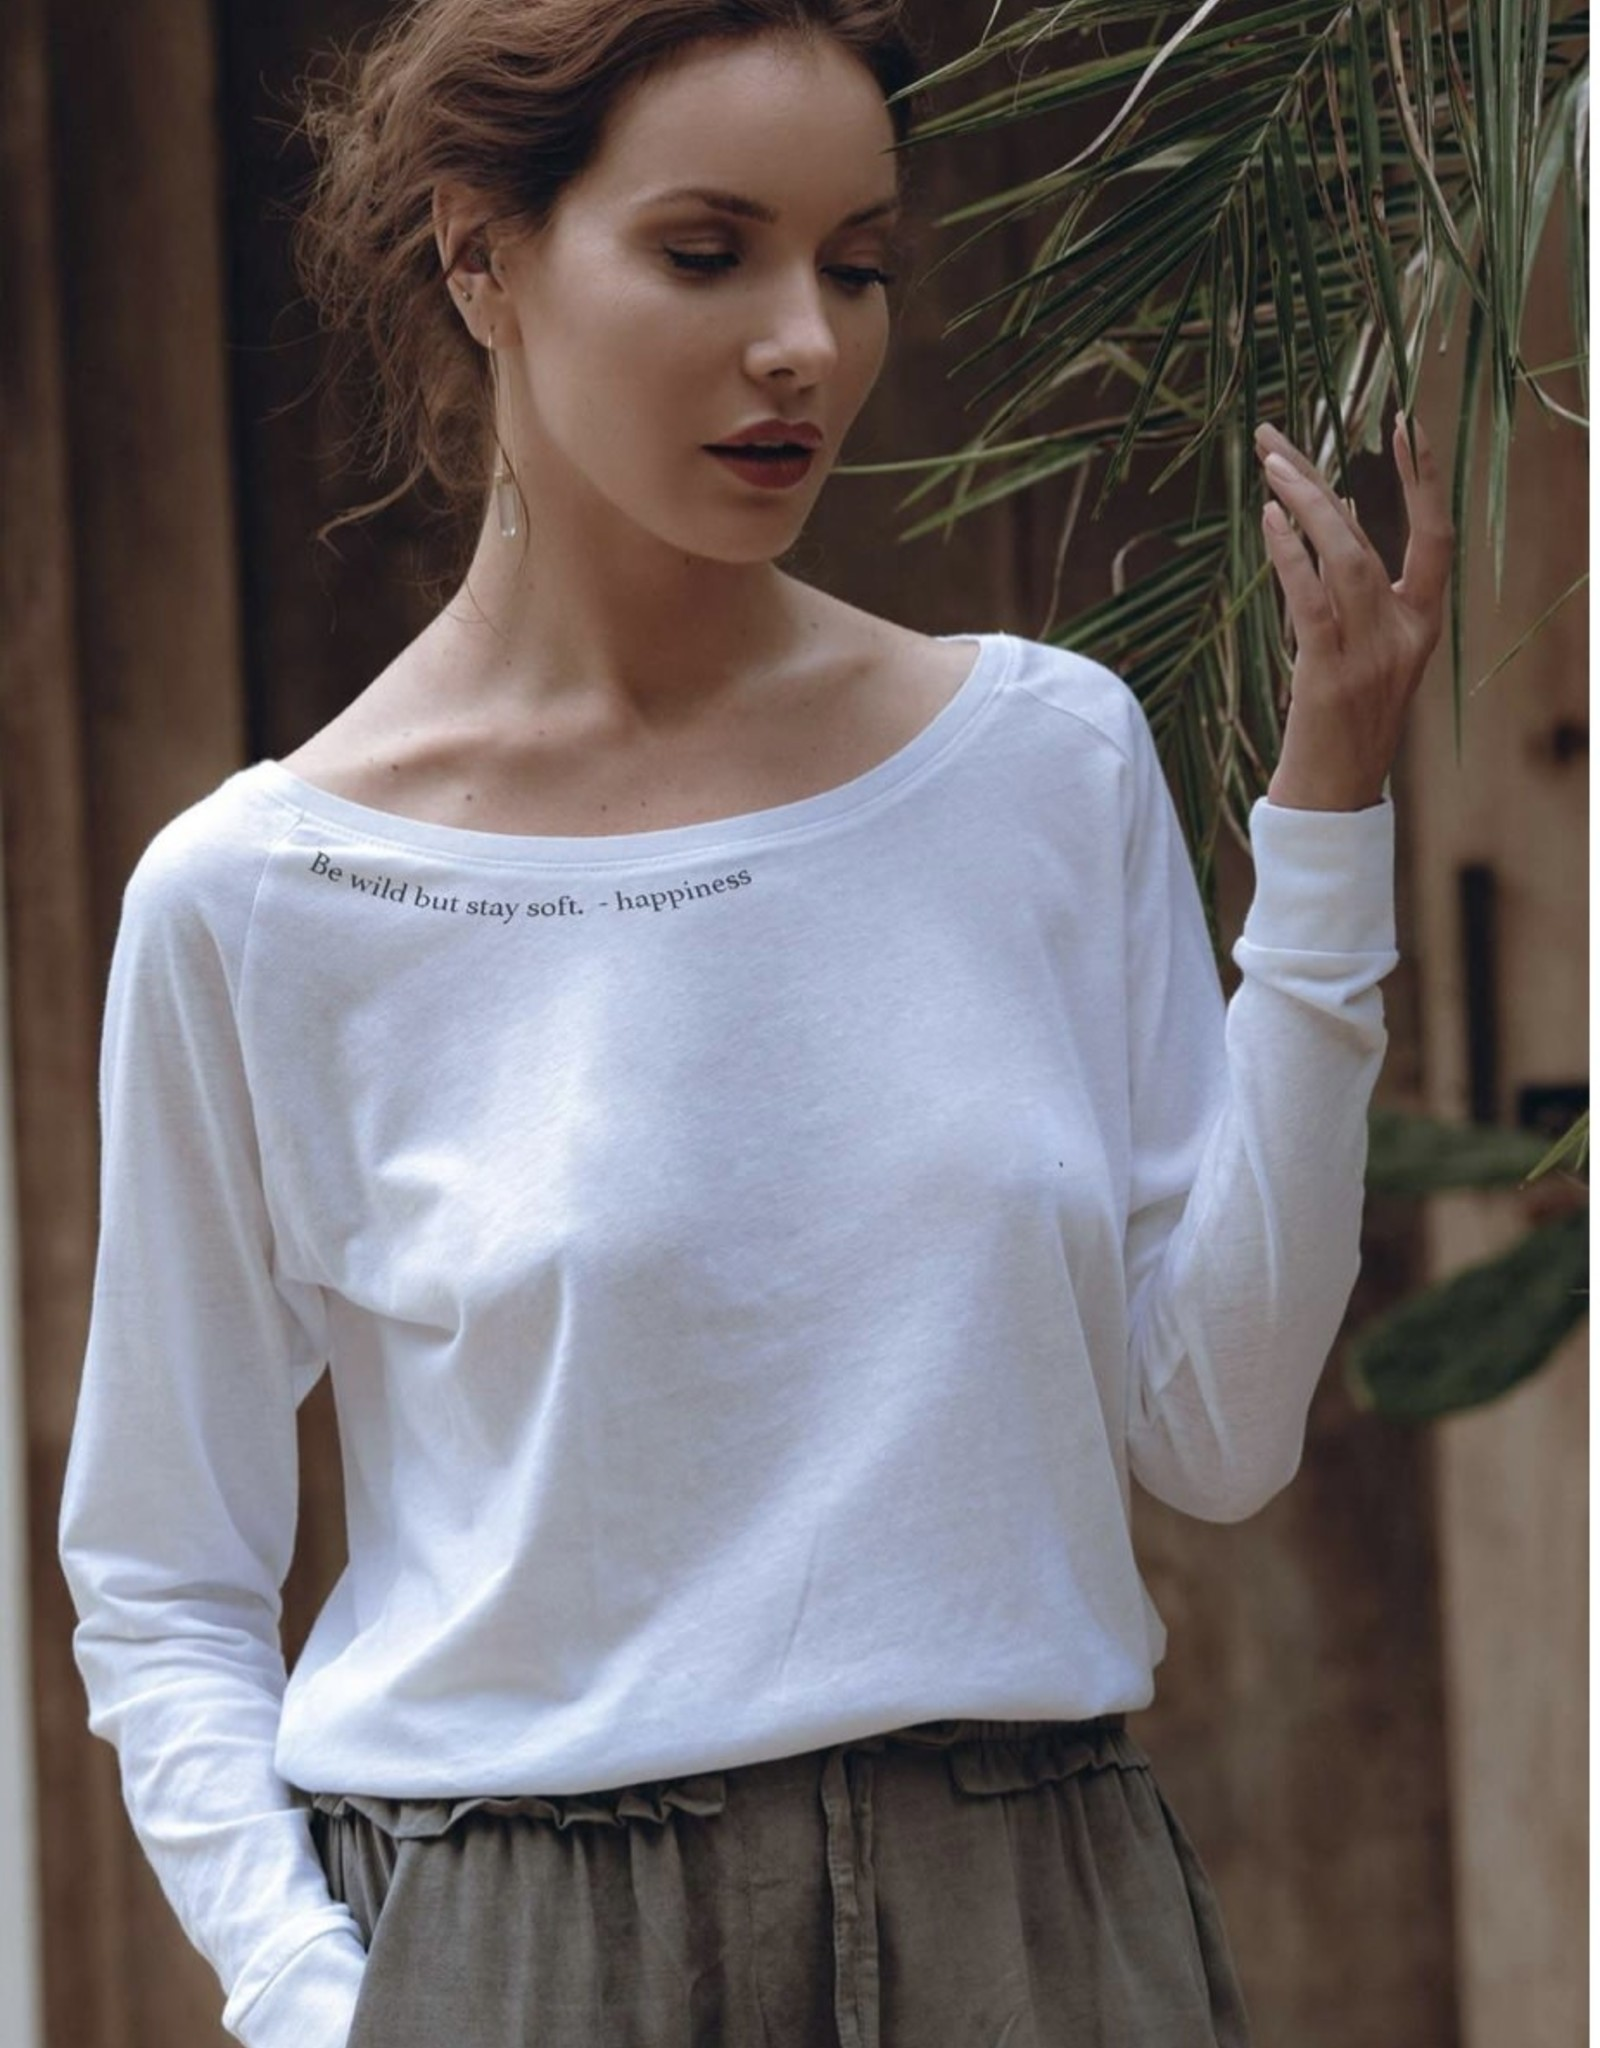 """OM & AH LONDON """"HAPPINESS"""" WHITE LONG SLEEVE T-SHIRT 8852 BY OM&AH"""